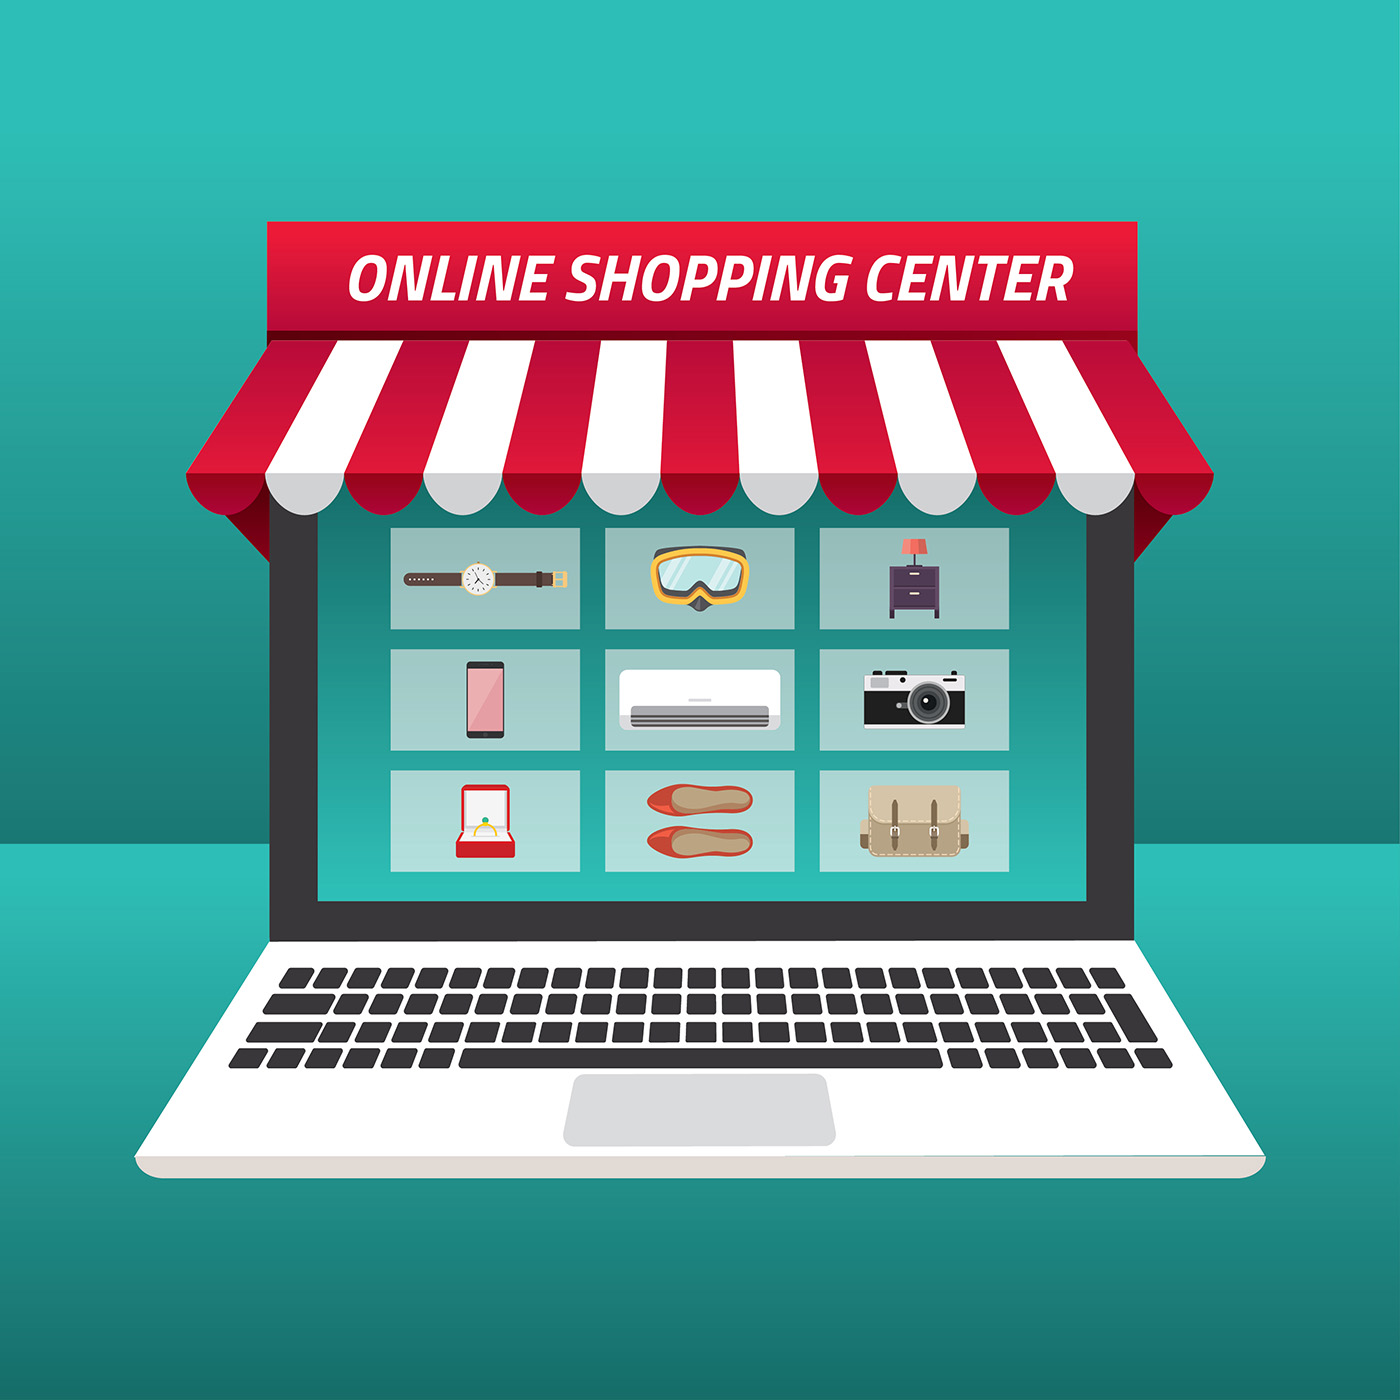 online-shopping-center-free-vector.jpg